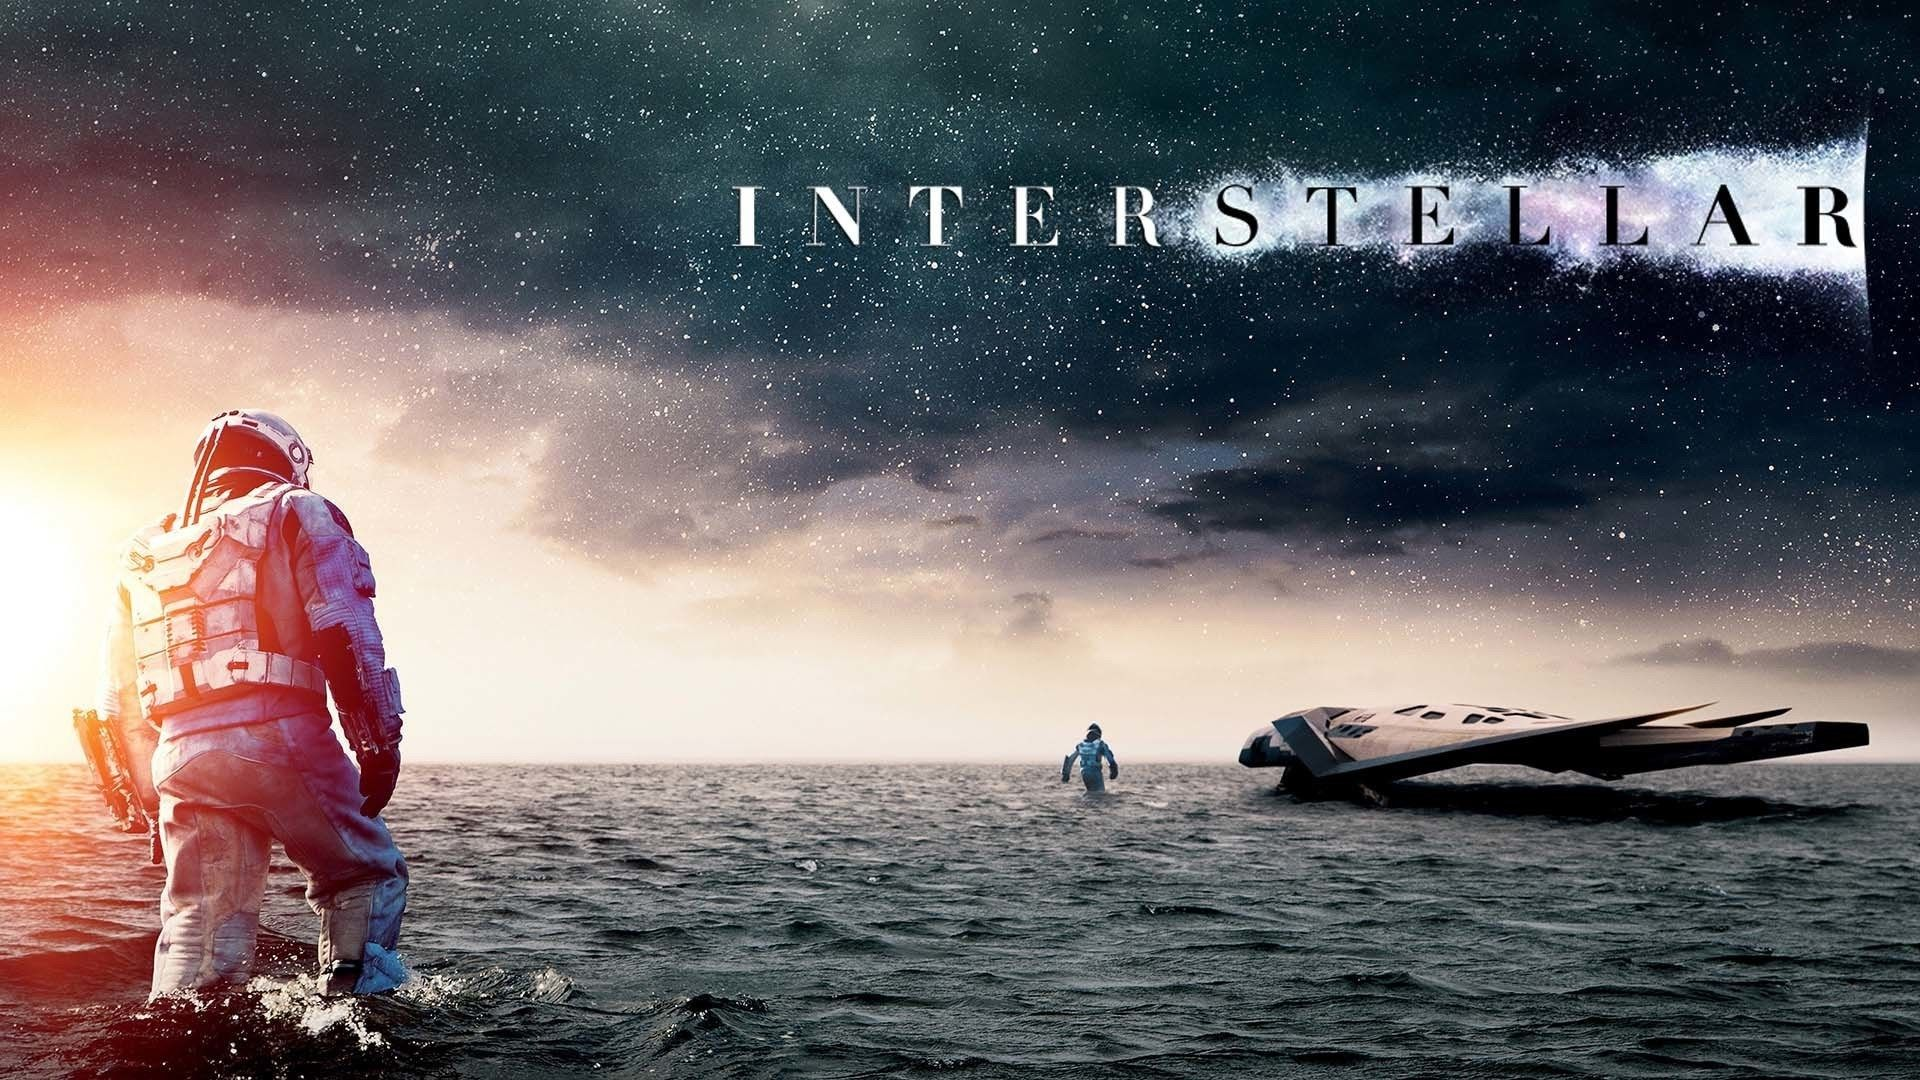 interstellar backround: Wallpapers Collection, 477 kB - Ridley Ross